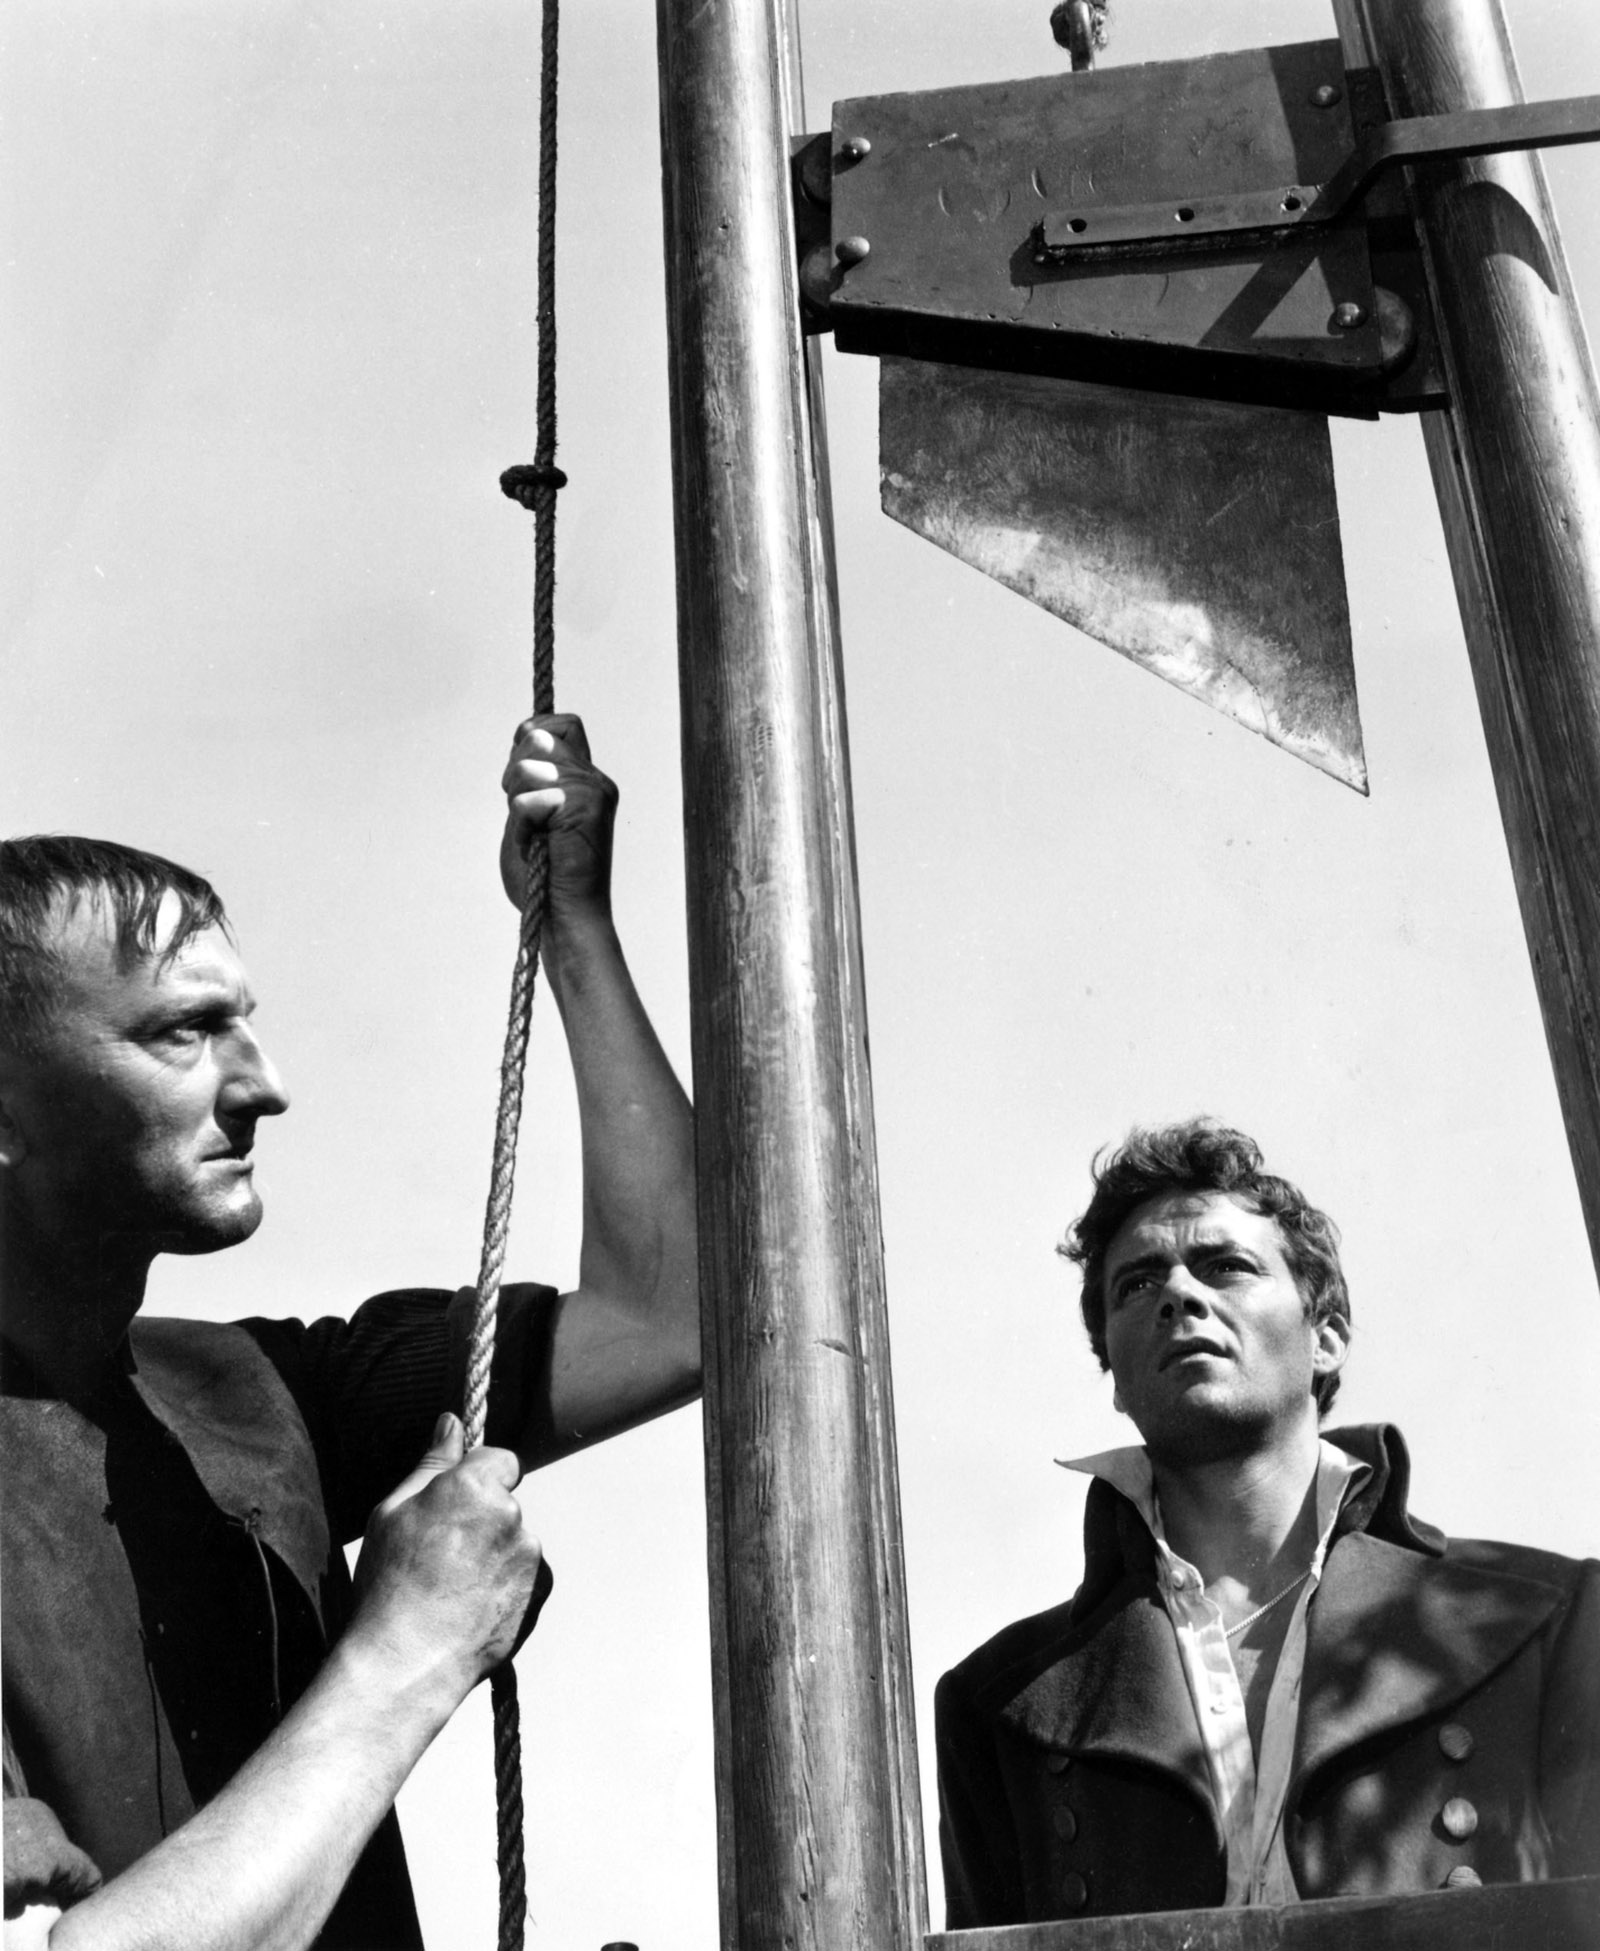 Dirk Bogarde (right) as Sydney Carton at the guillotine in A Tale of Two Cities, 1958